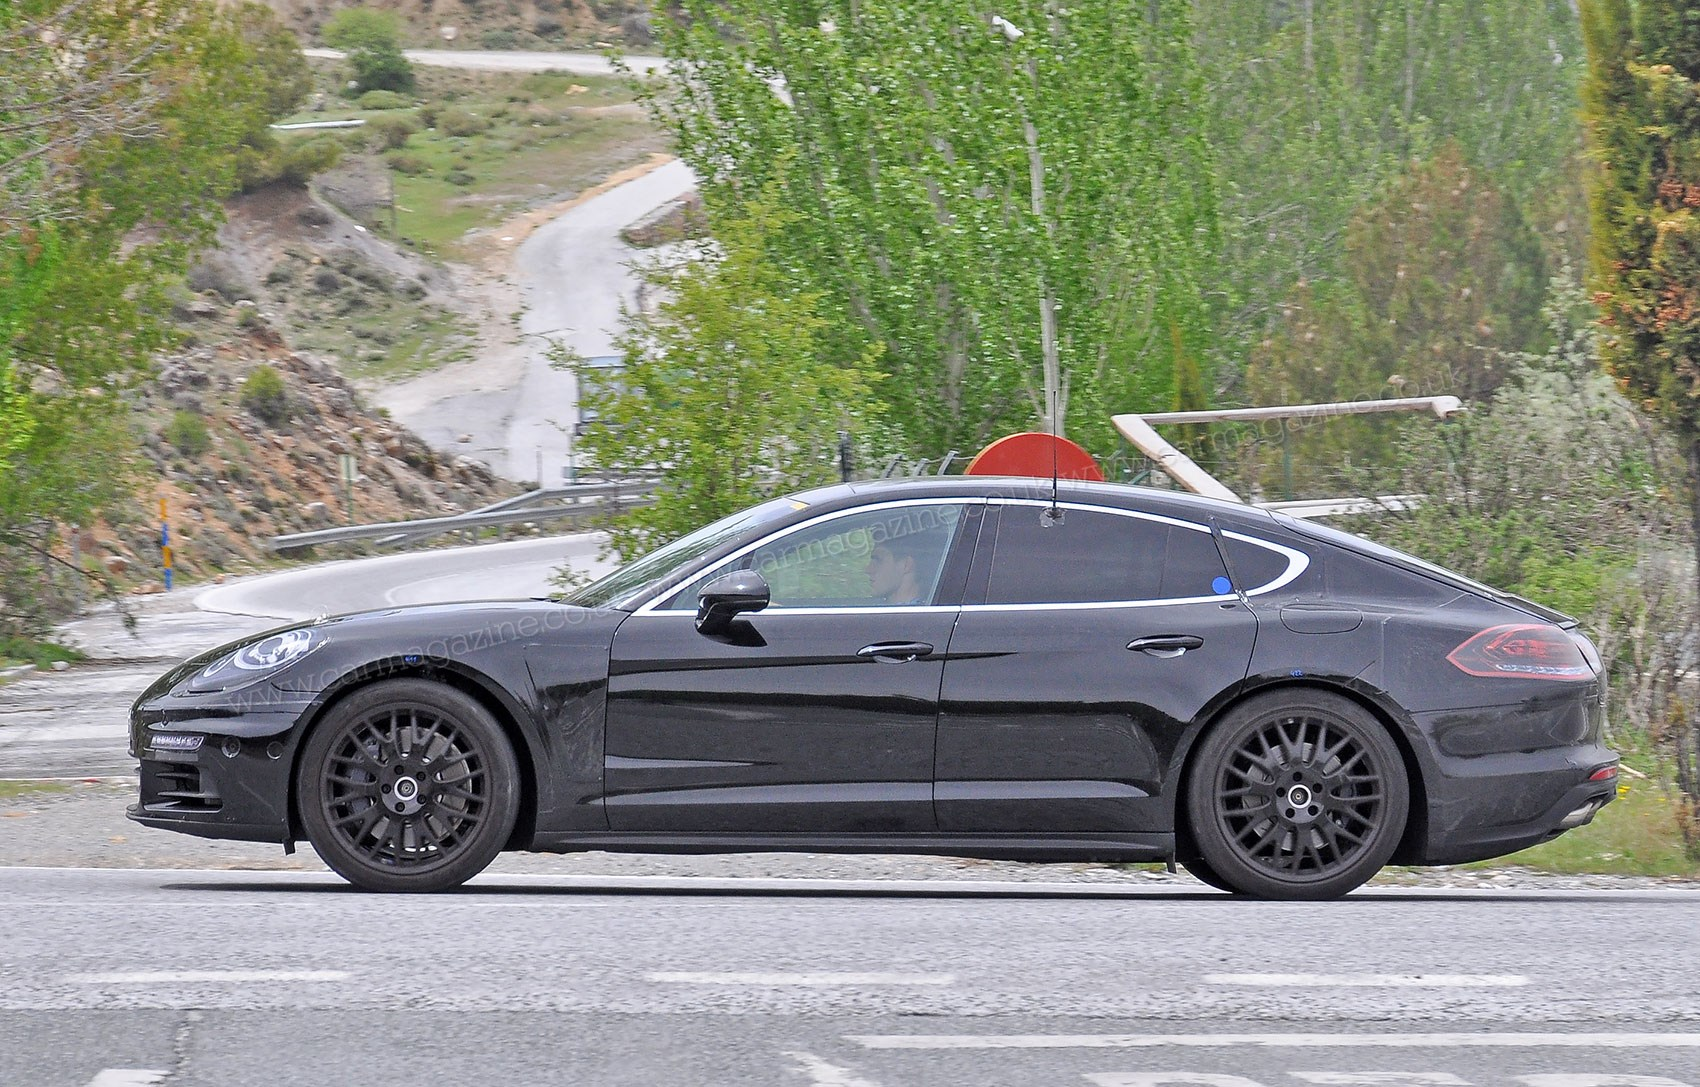 porsche panamera mk2 spyshots it s 2016 s new panam codenamed g2 by car magazine. Black Bedroom Furniture Sets. Home Design Ideas